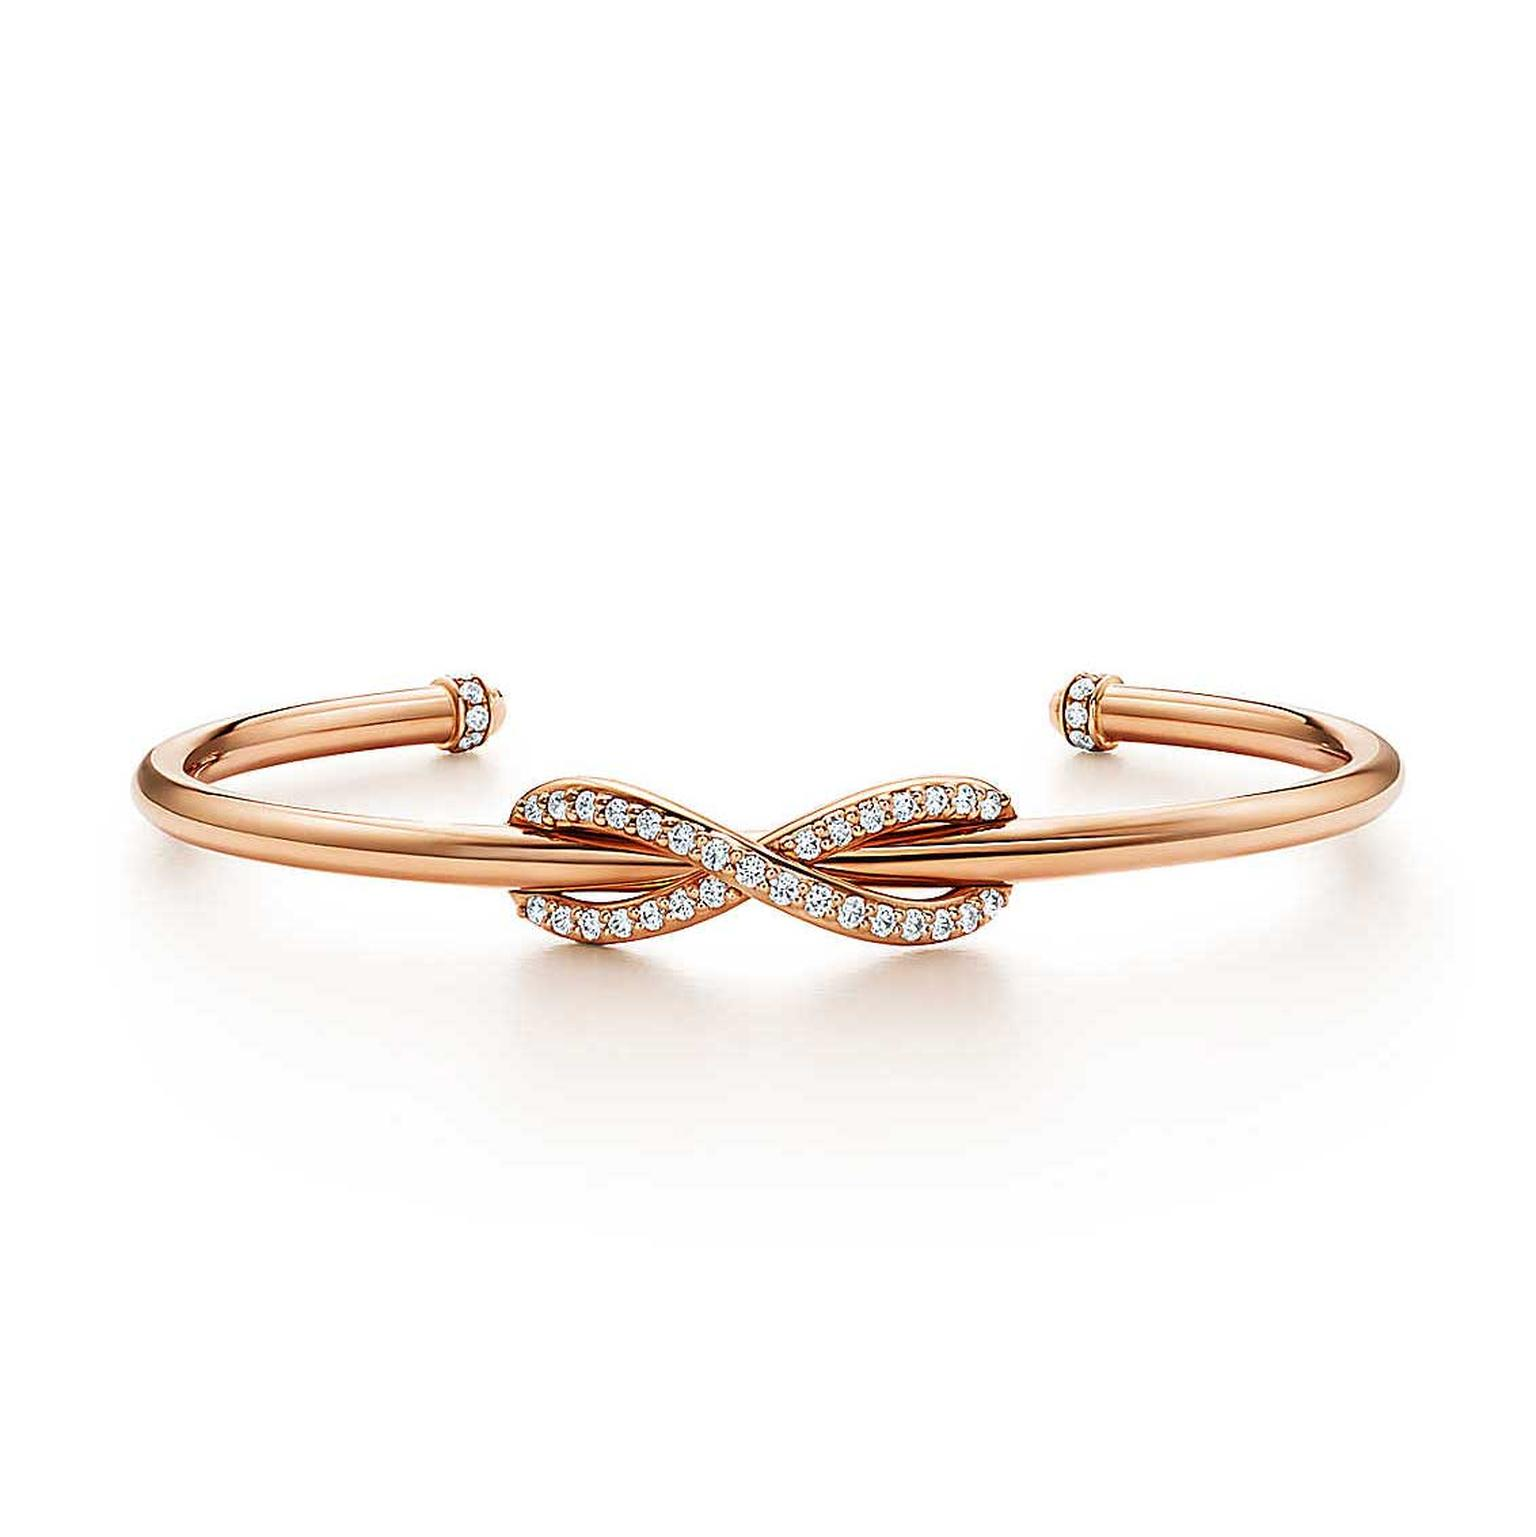 Tiffany Infinity cuff in rose gold with diamonds